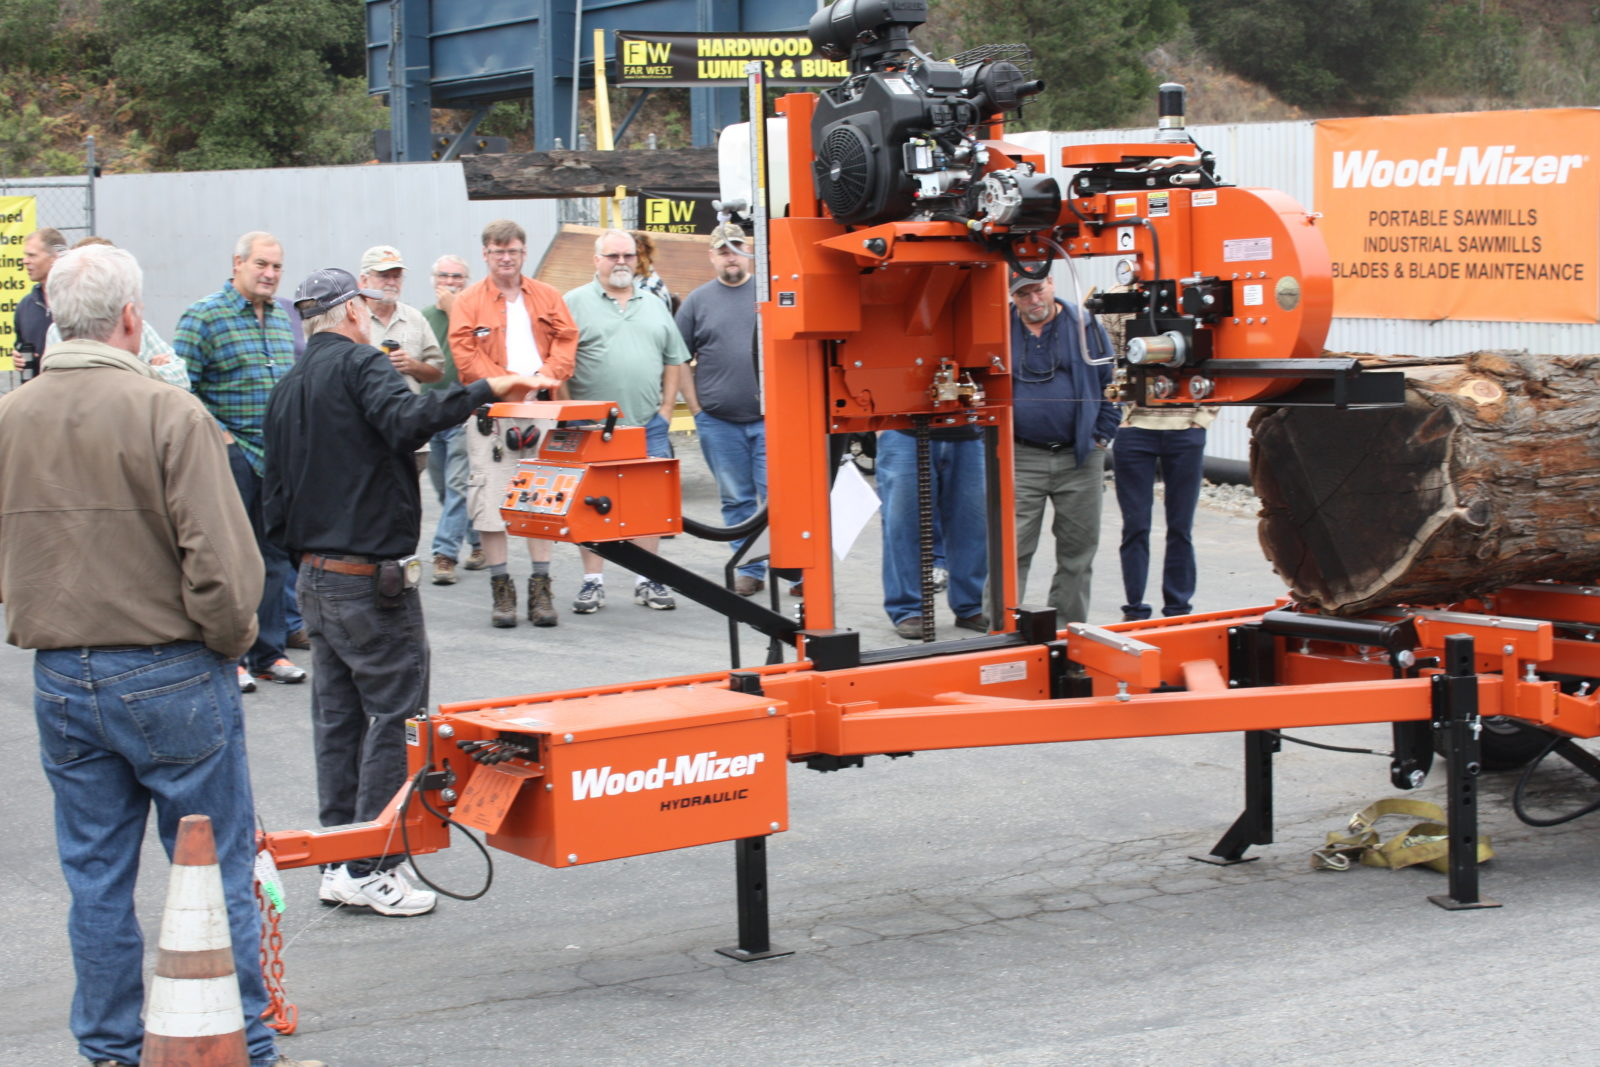 Wood-Mizer sawmill alignment seminar